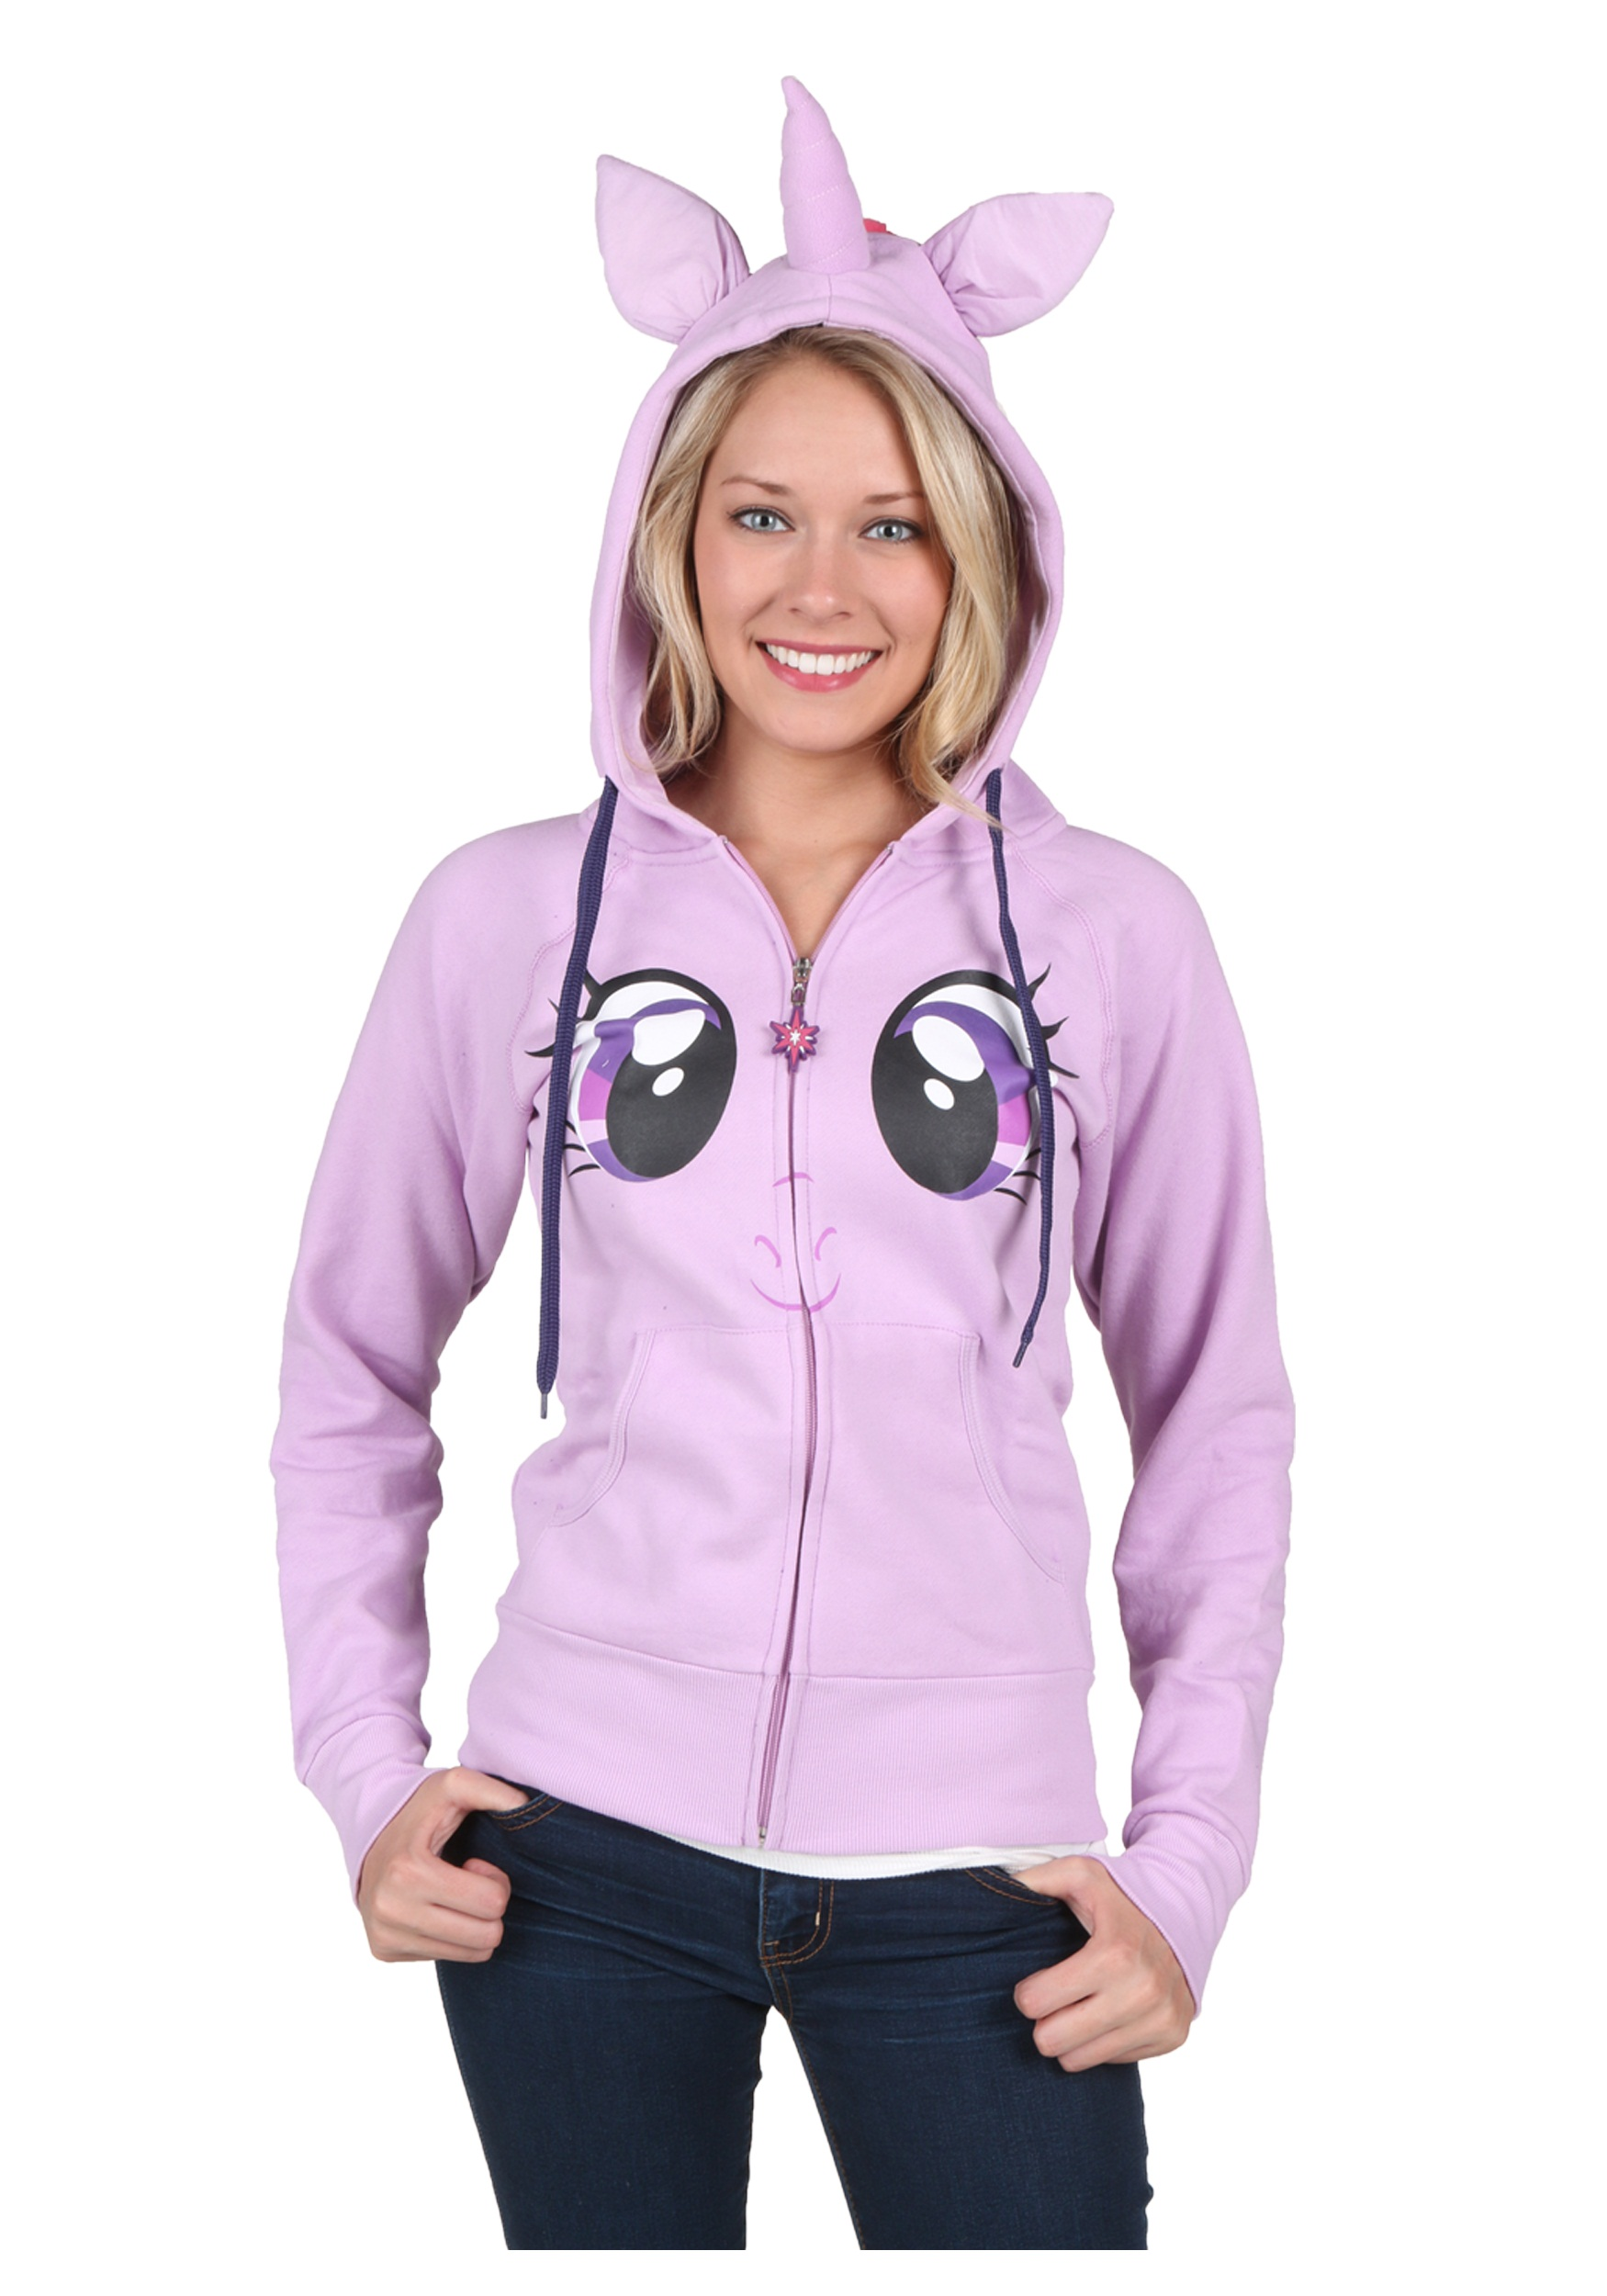 Women's MLP Twilight Face Costume Hoodie